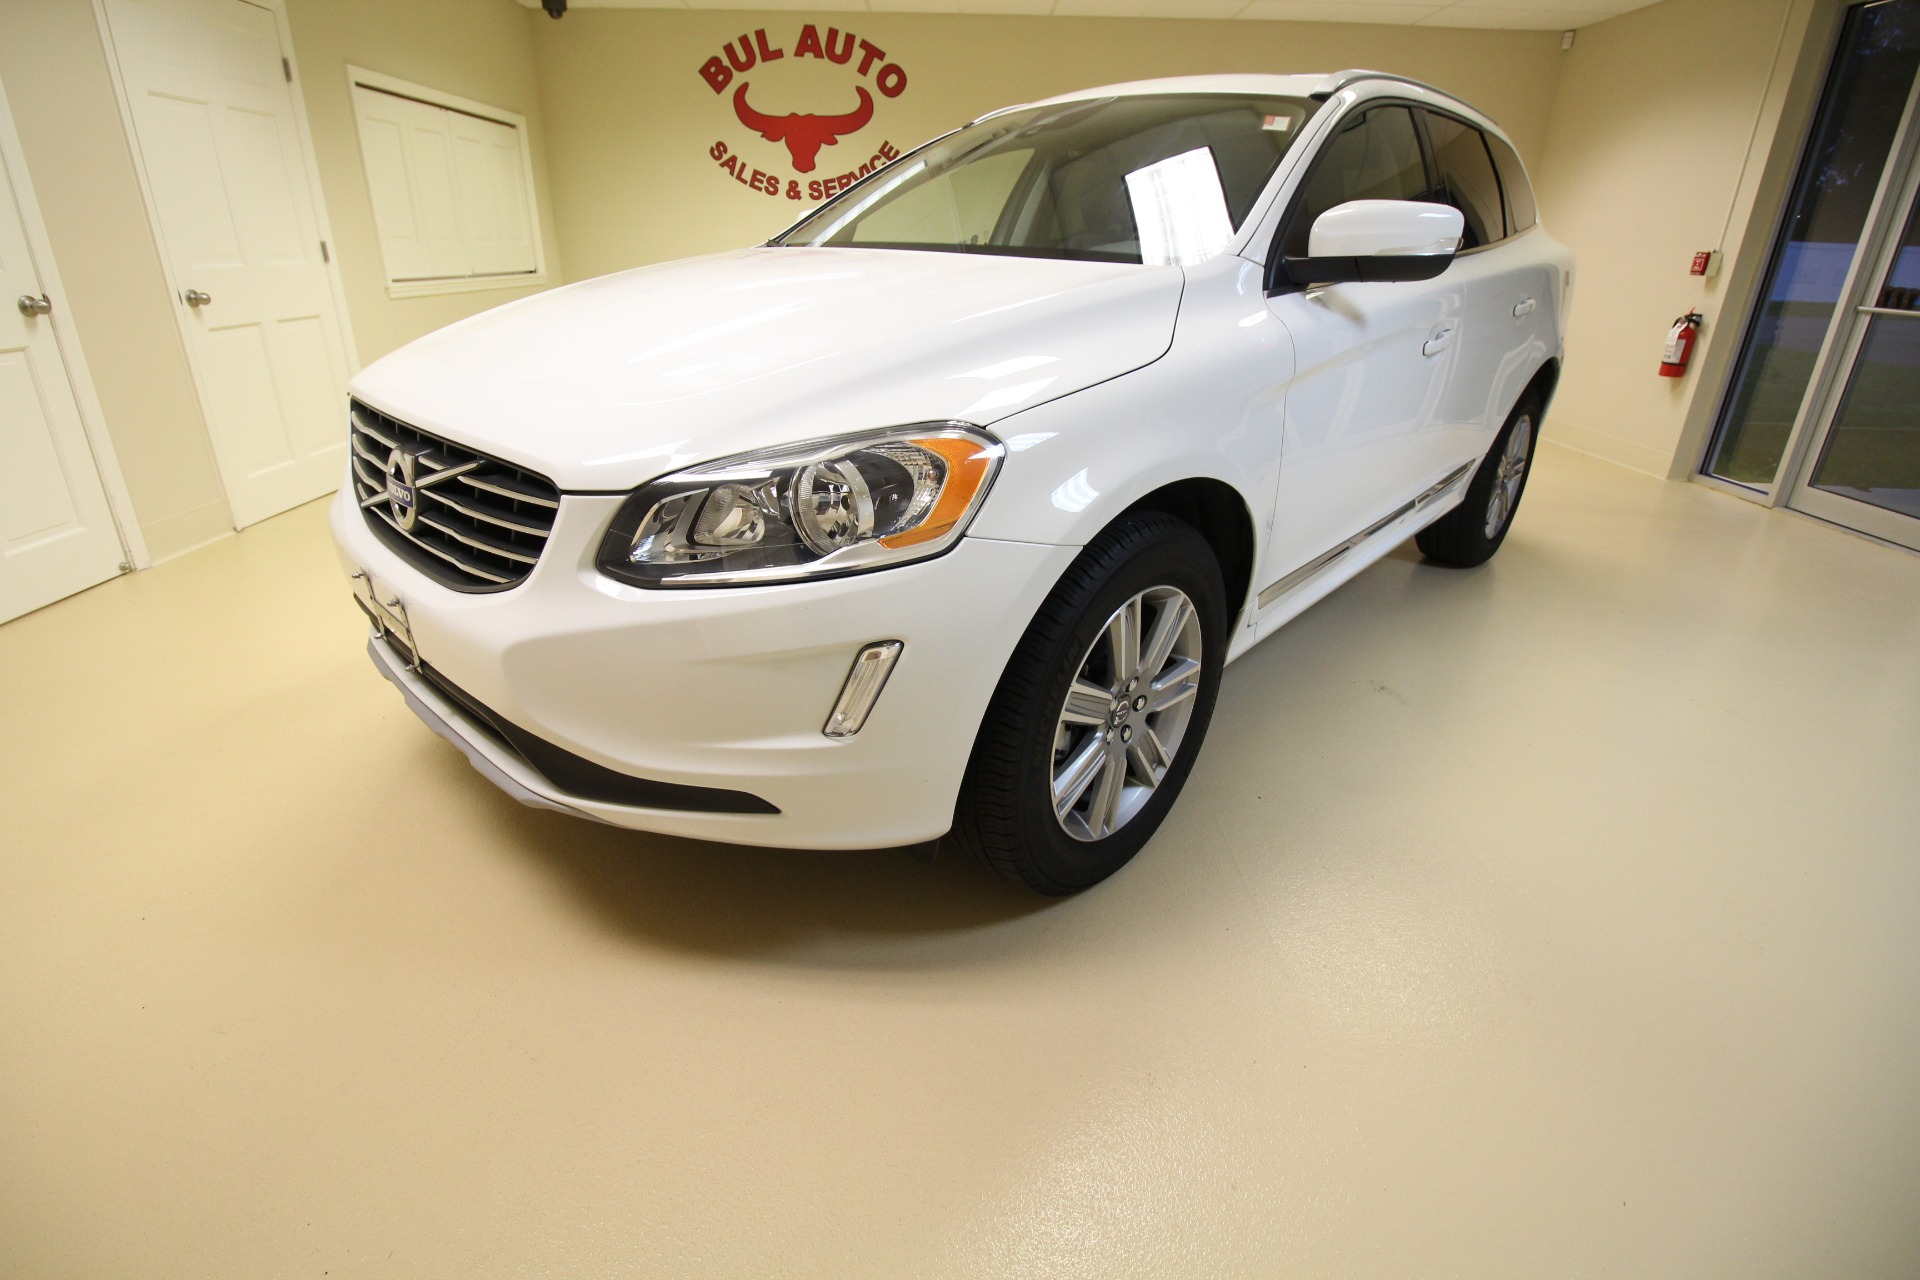 2017 volvo xc60 t5 inscription stock 17162 for sale near albany ny ny volvo dealer for sale. Black Bedroom Furniture Sets. Home Design Ideas